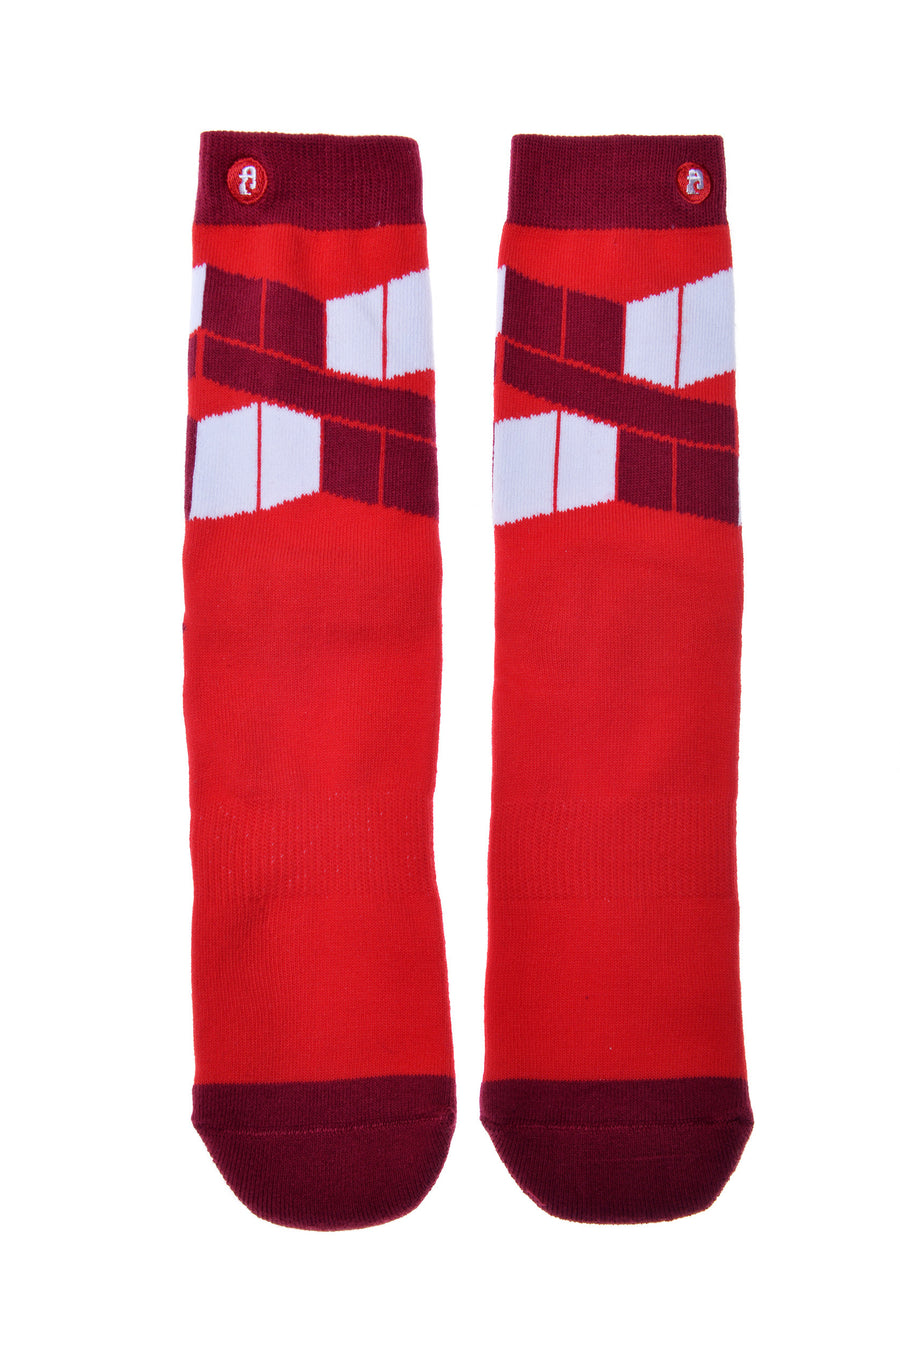 FOOL'S DAY The Flag Red Athletic Socks